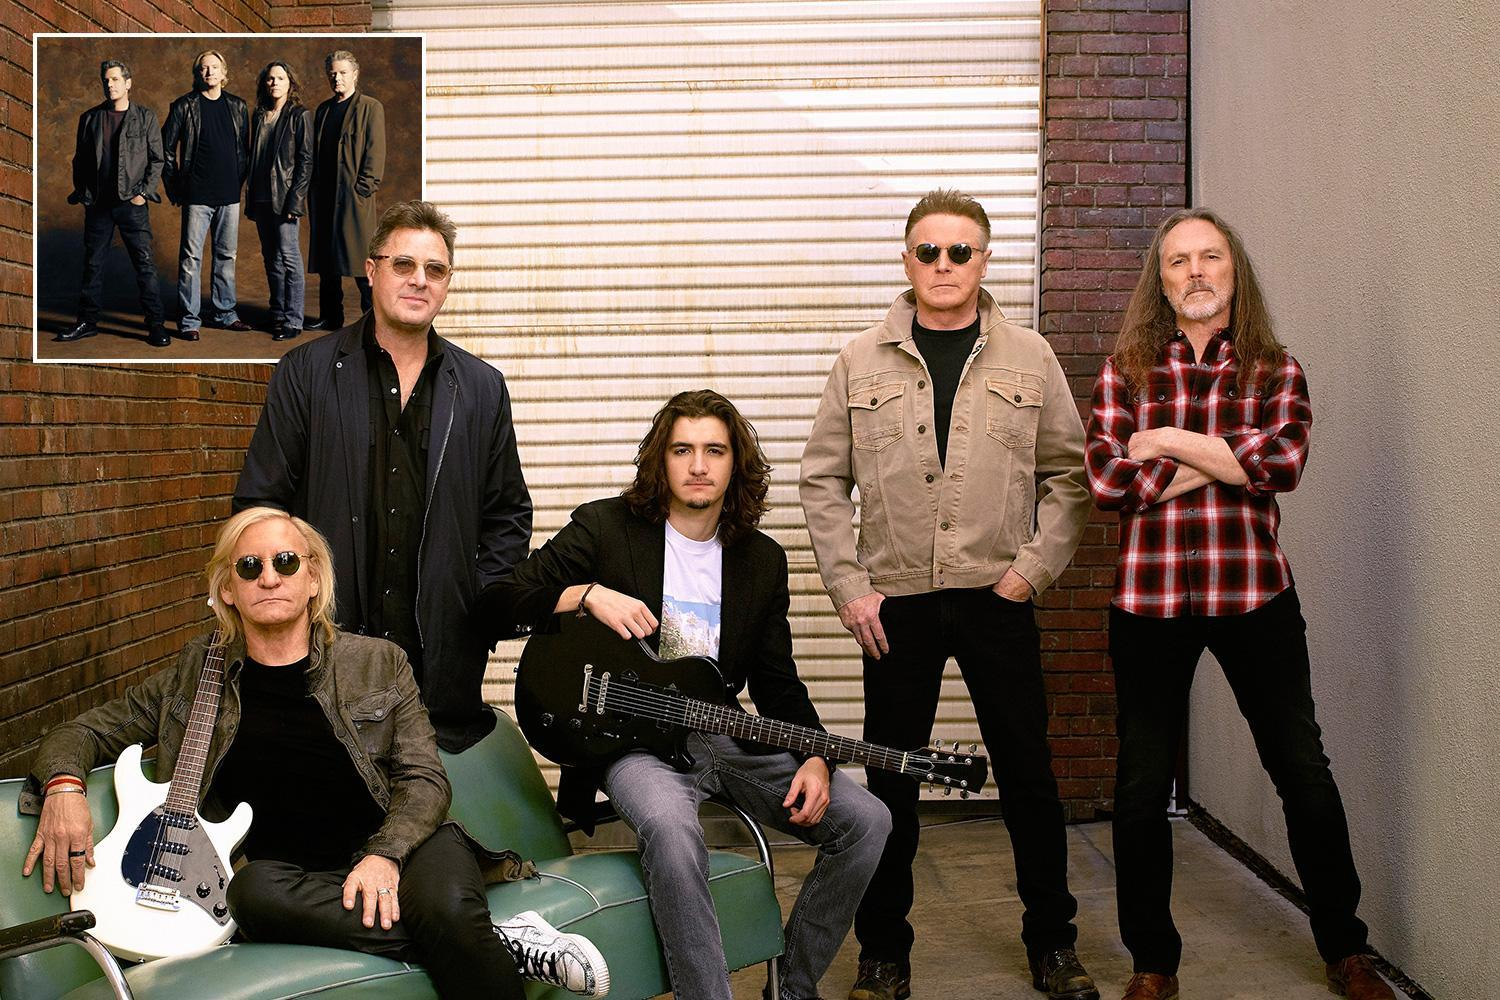 The Eagles embrace Glenn Frey's son into the band ahead of their first UK tour since the singer's tragic death in 2016